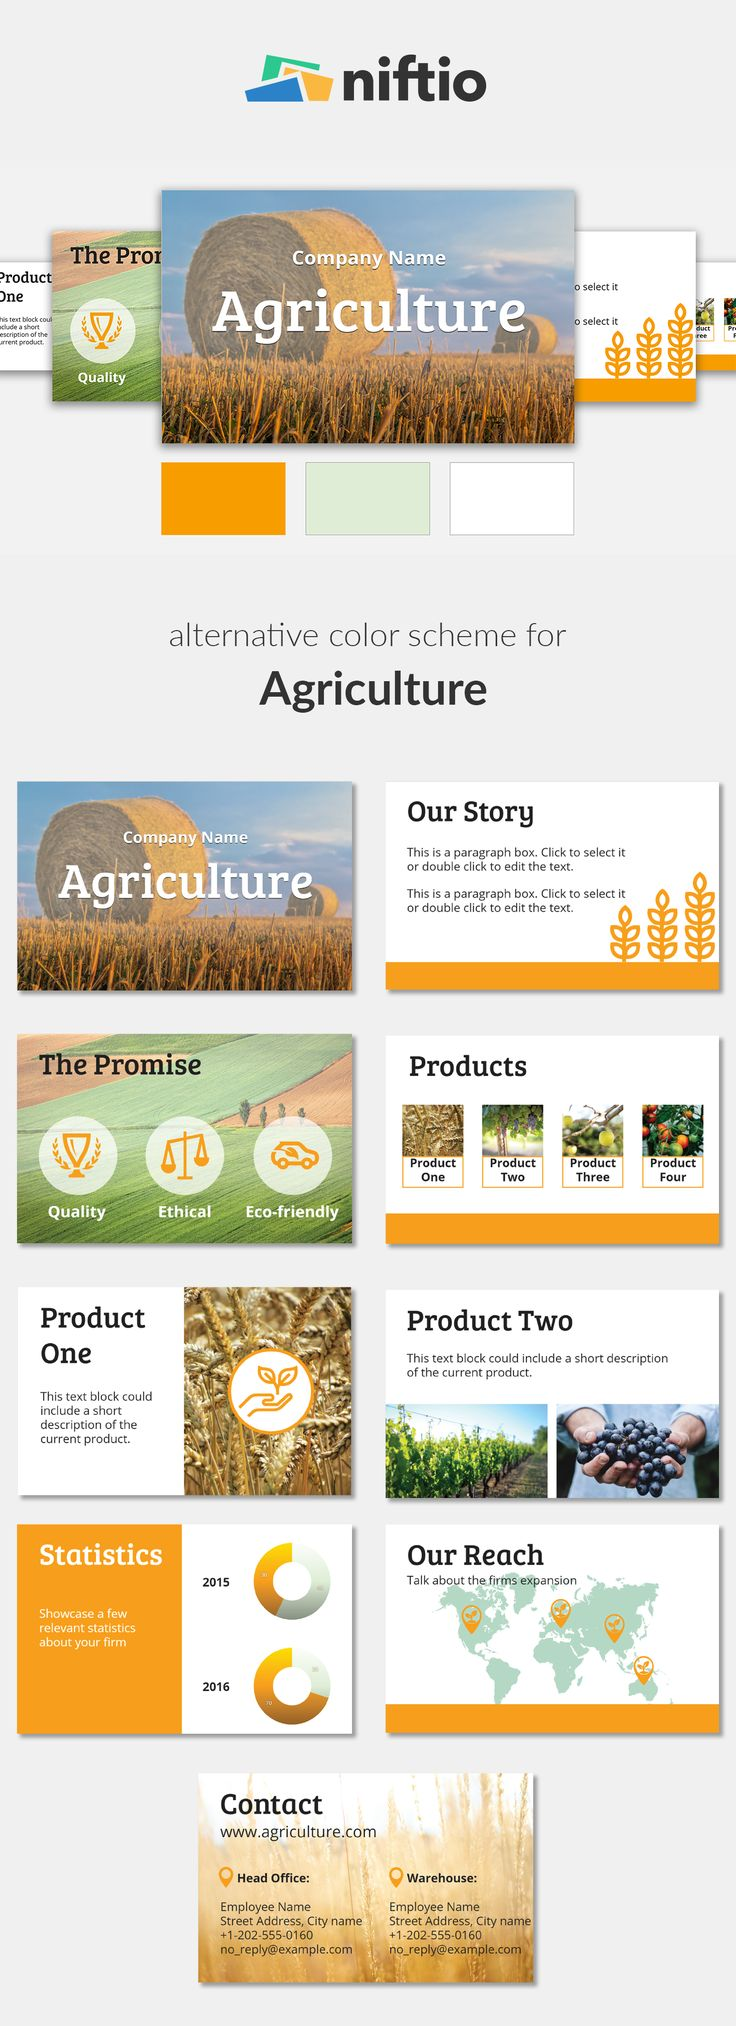 AgriBusiness Presentation Template | Agriculture Alternative Color Scheme | Online Presentation Tool | PowerPoint & Prezi Alternative | Presentation Software